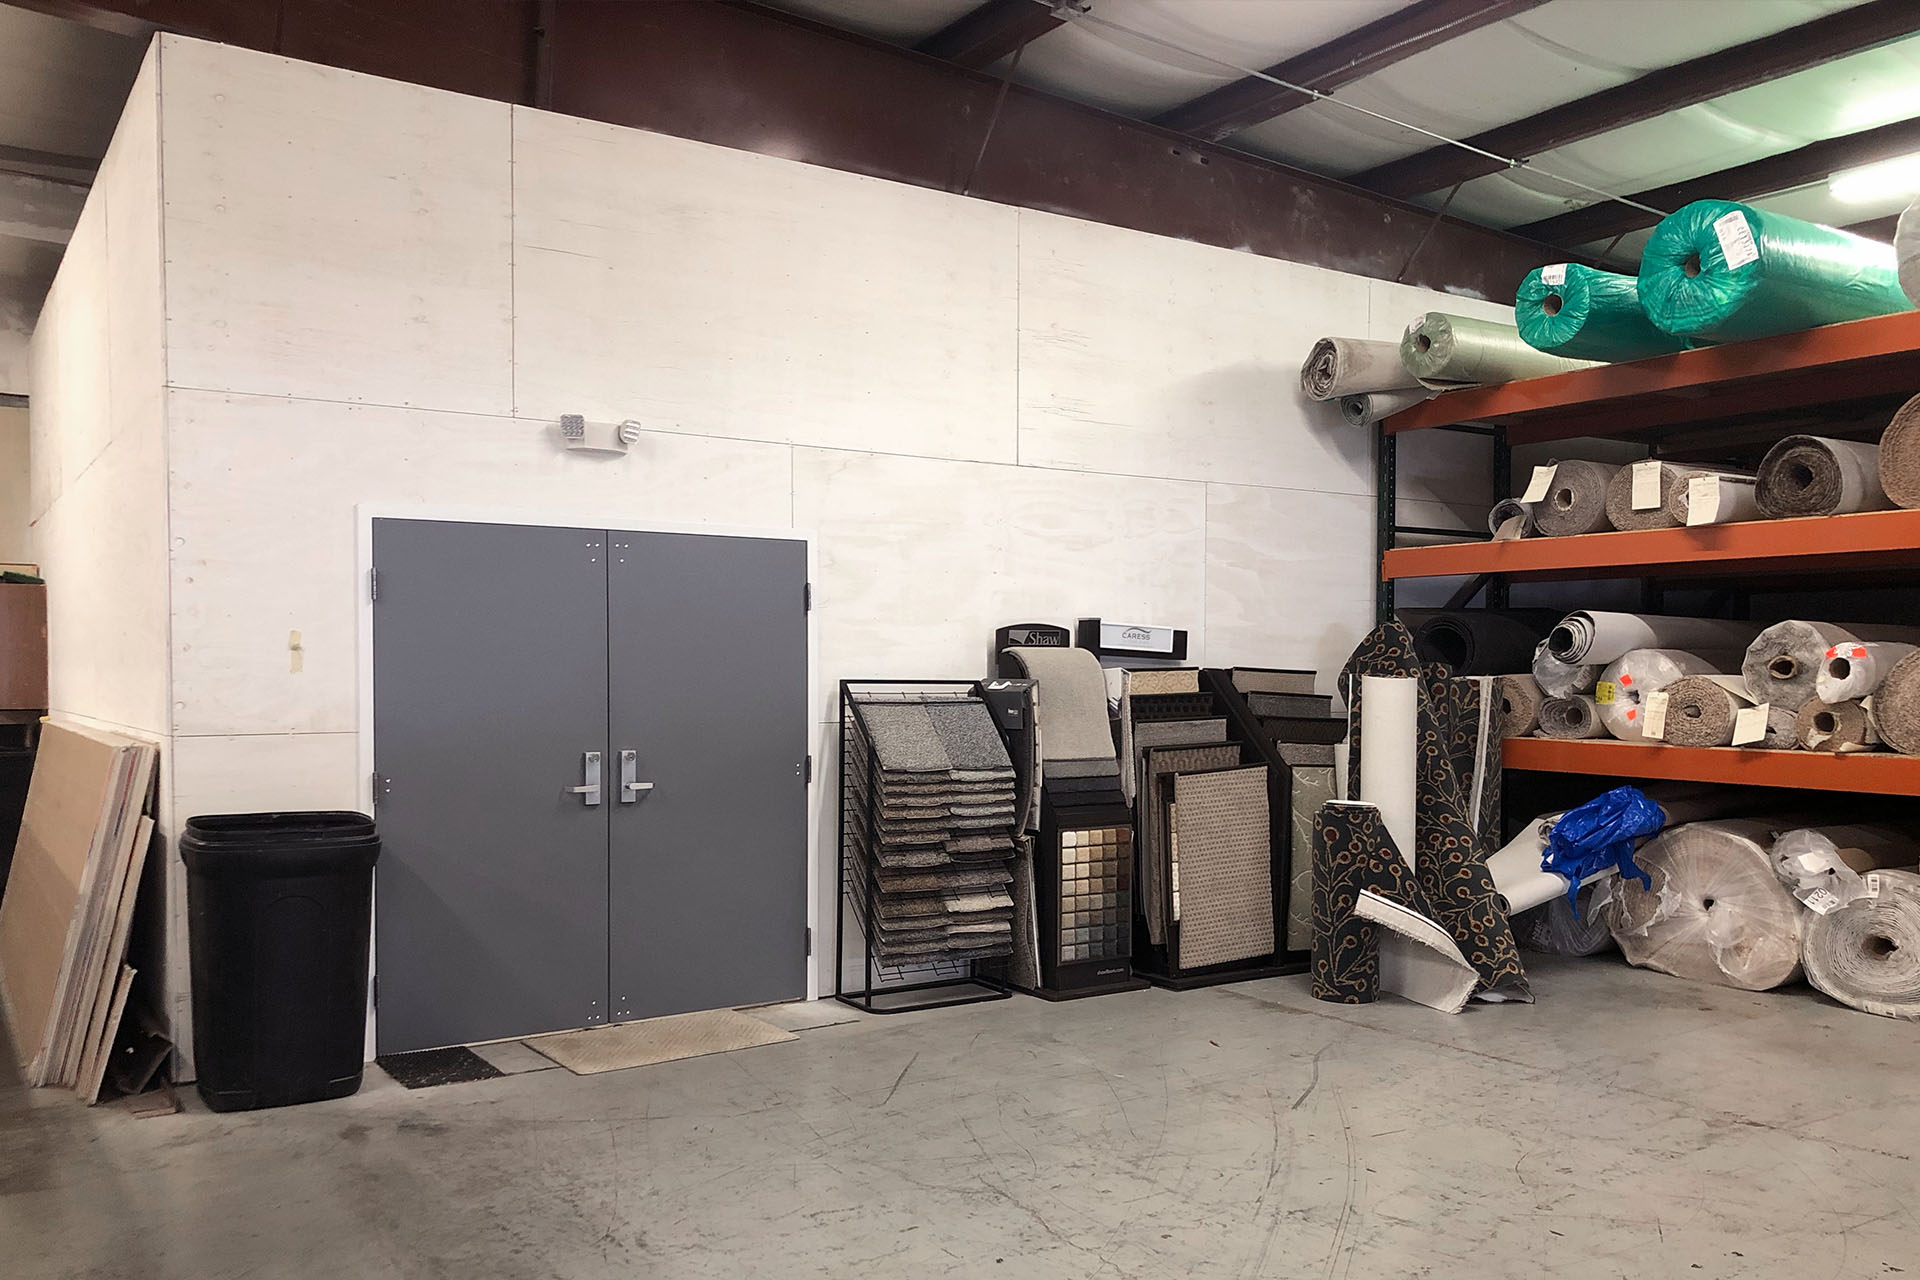 6727-2-after-vinyl-showroom-warehouse-March-2019-dandsflooring.jpg